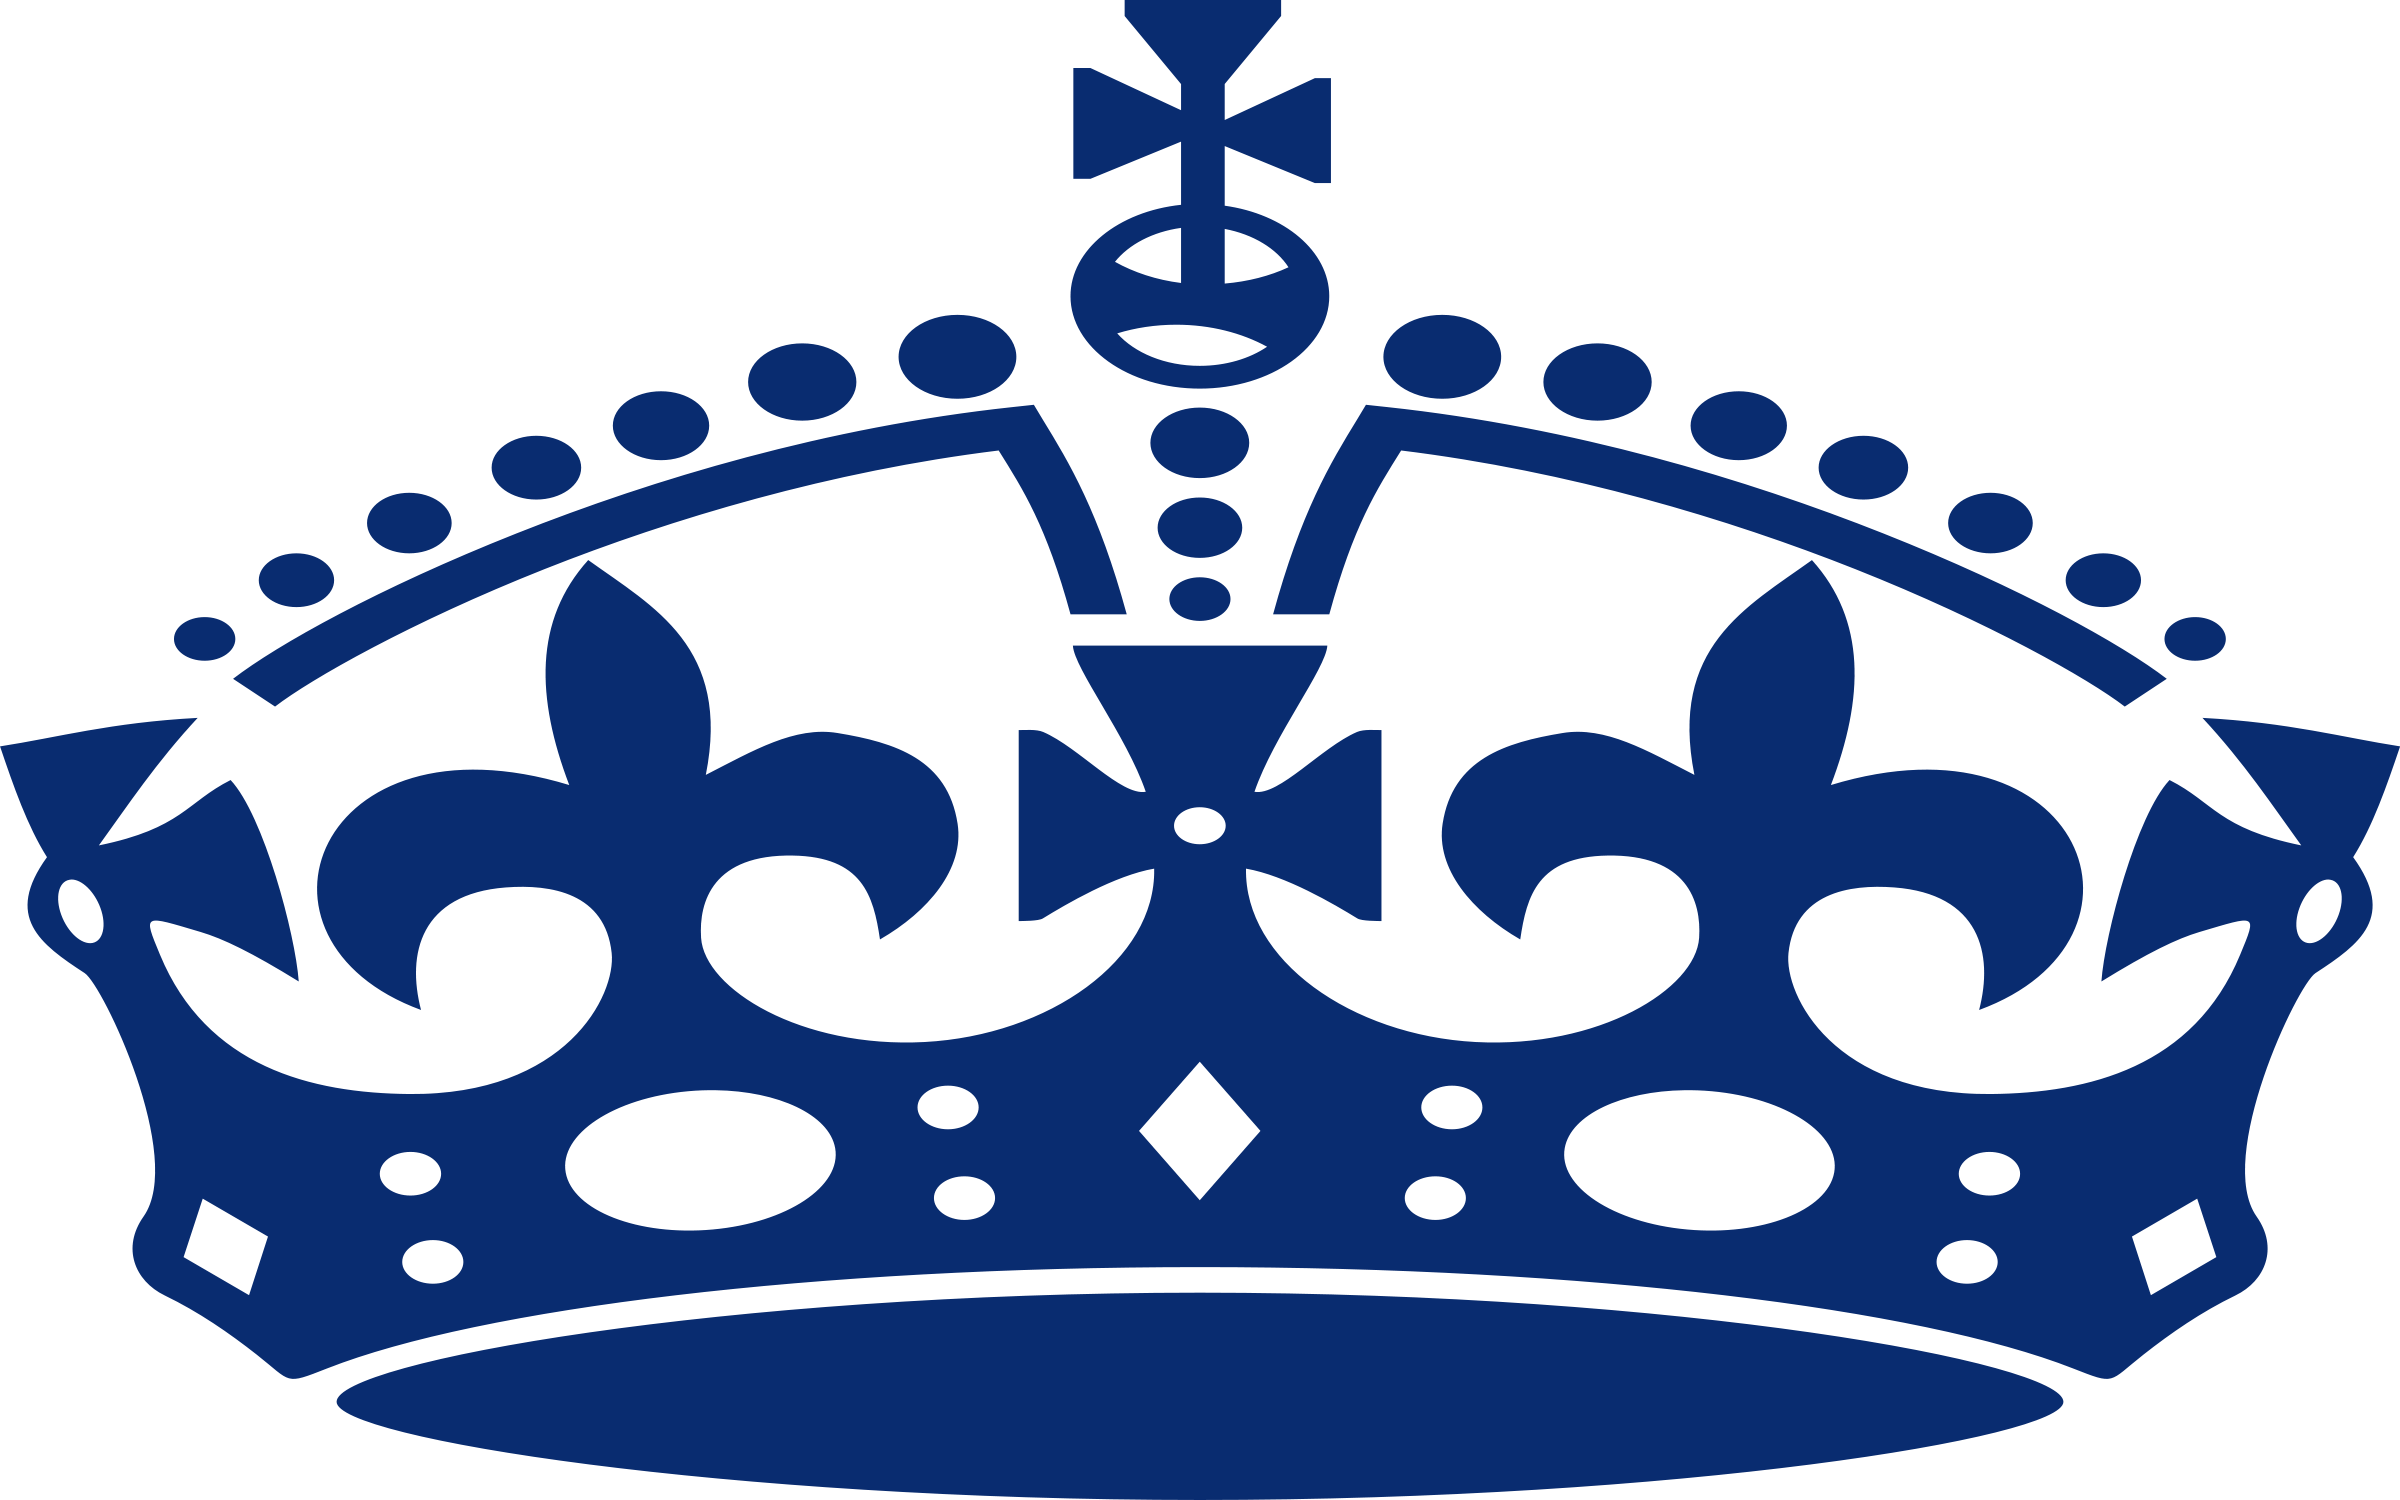 Crown png clipart image black and white download Blue Crown.png - ClipArt Best image black and white download